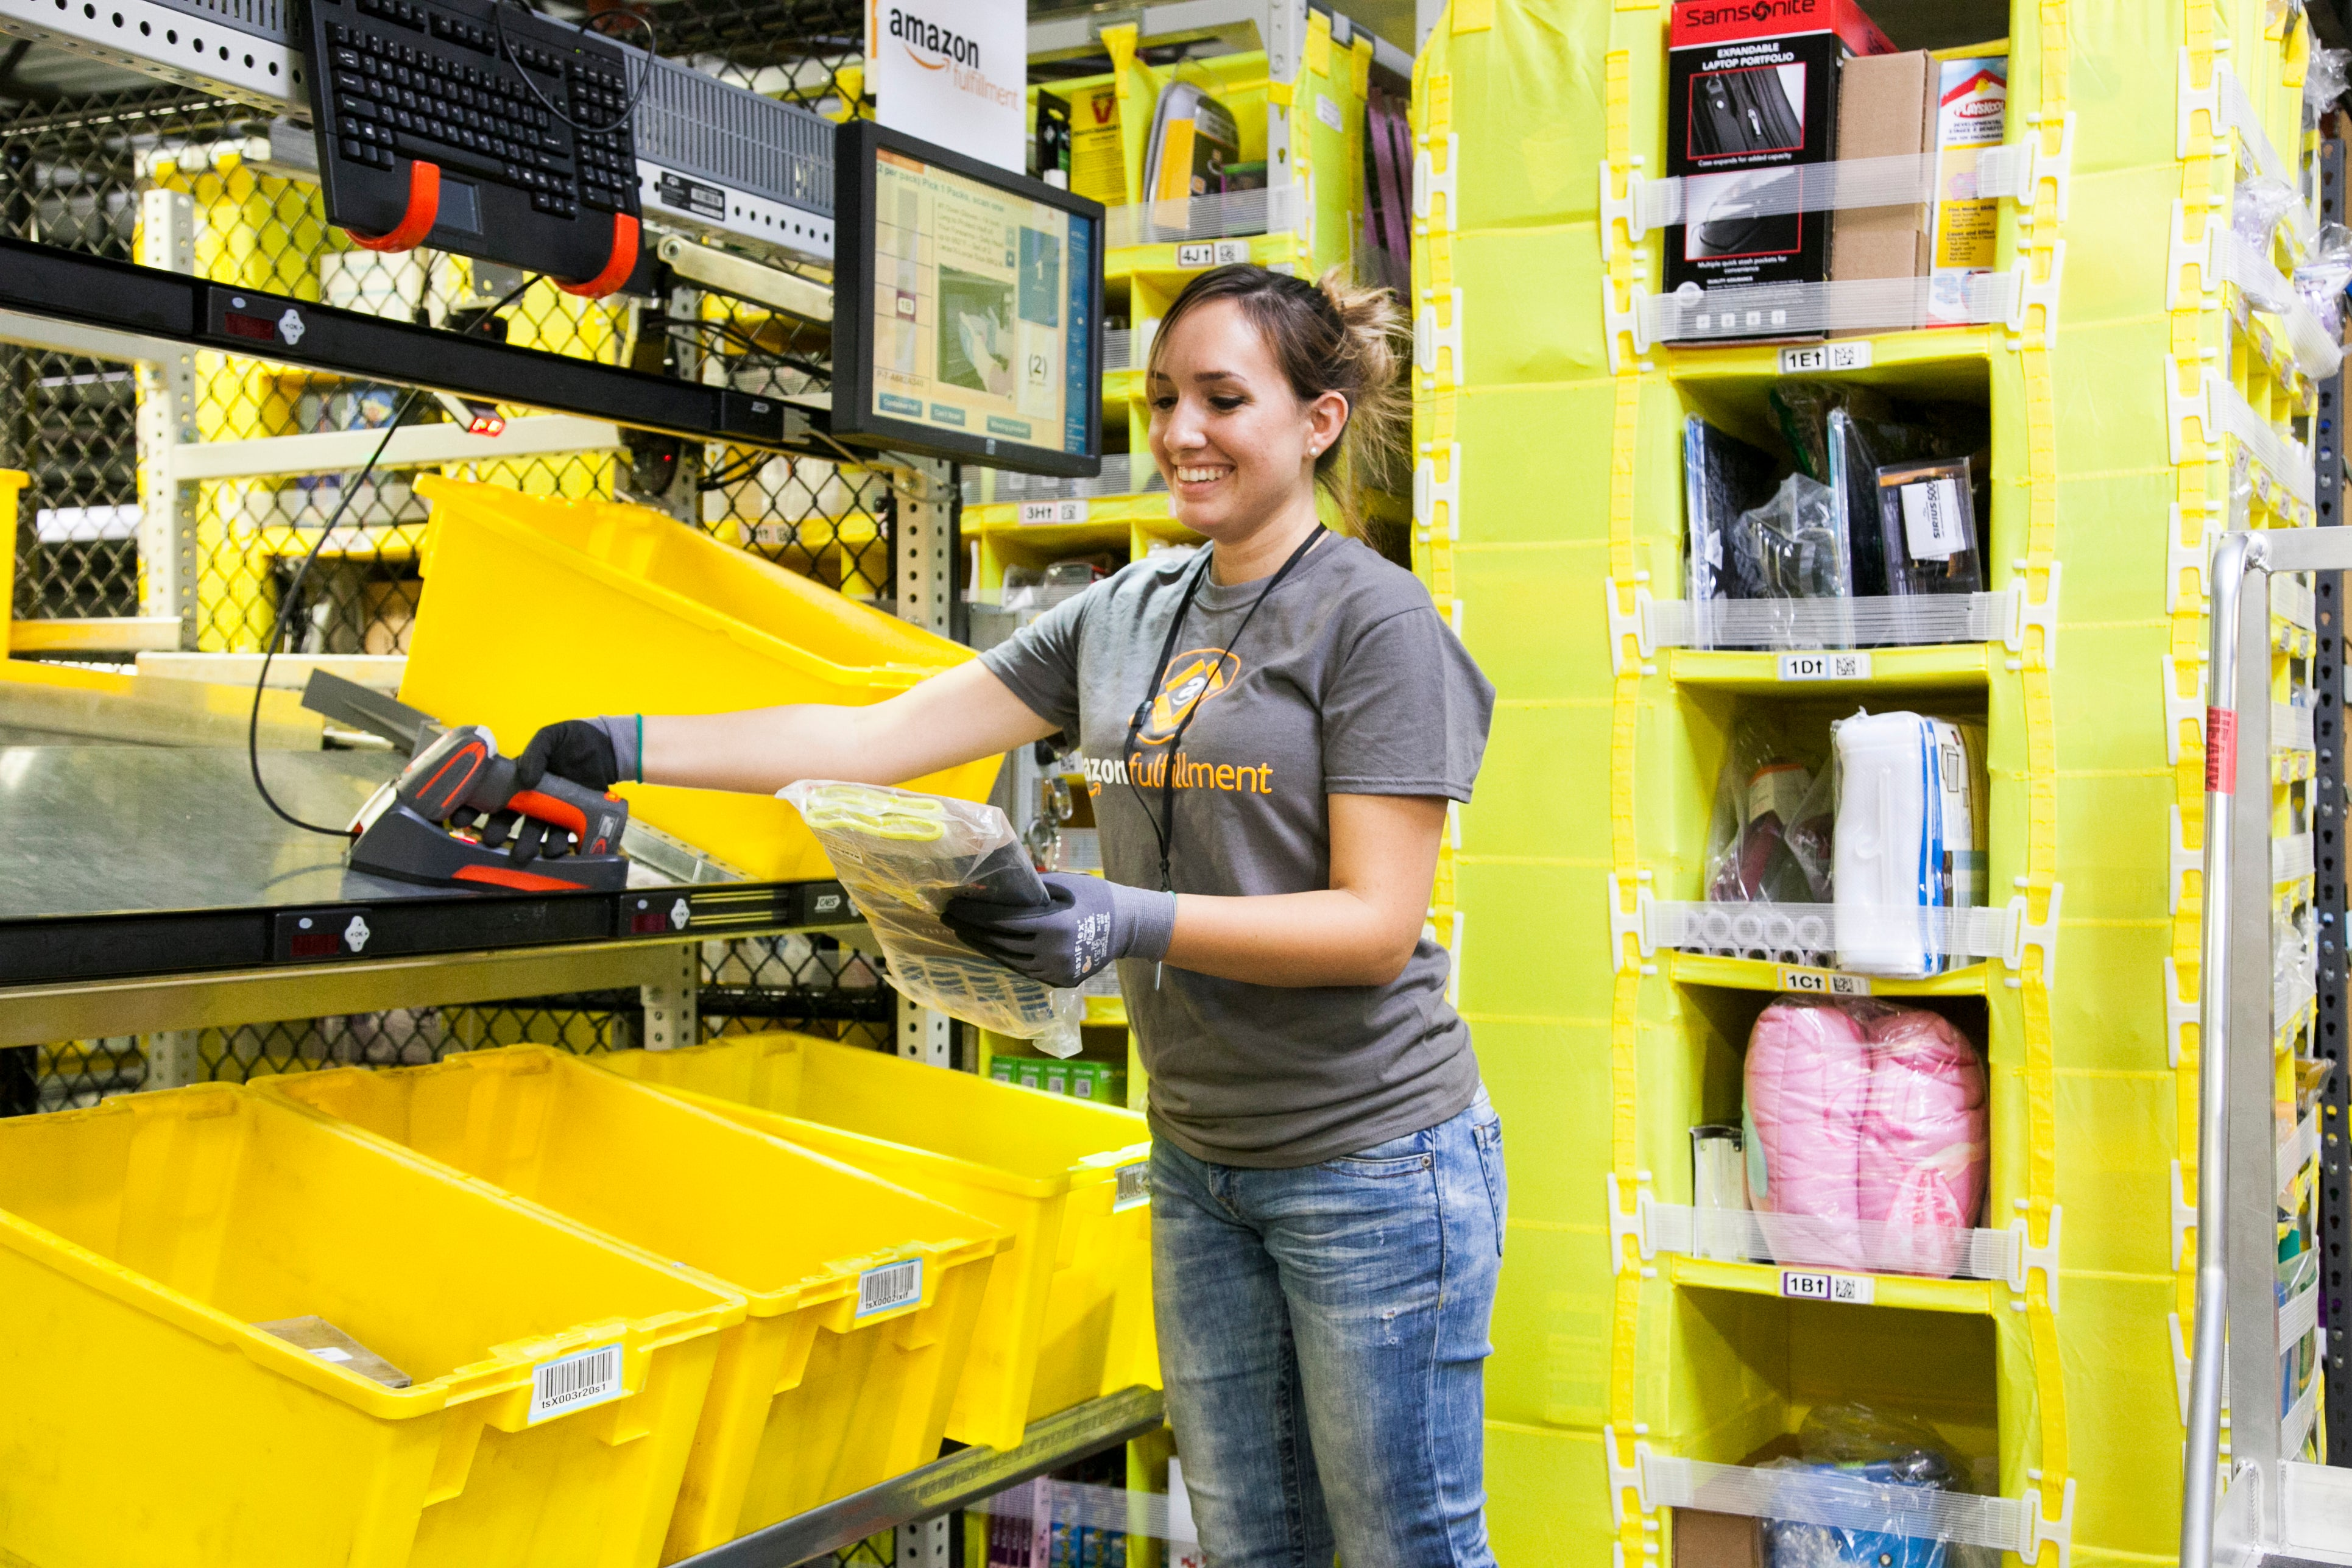 An Amazon worker in one of the company's fulfillment centers.